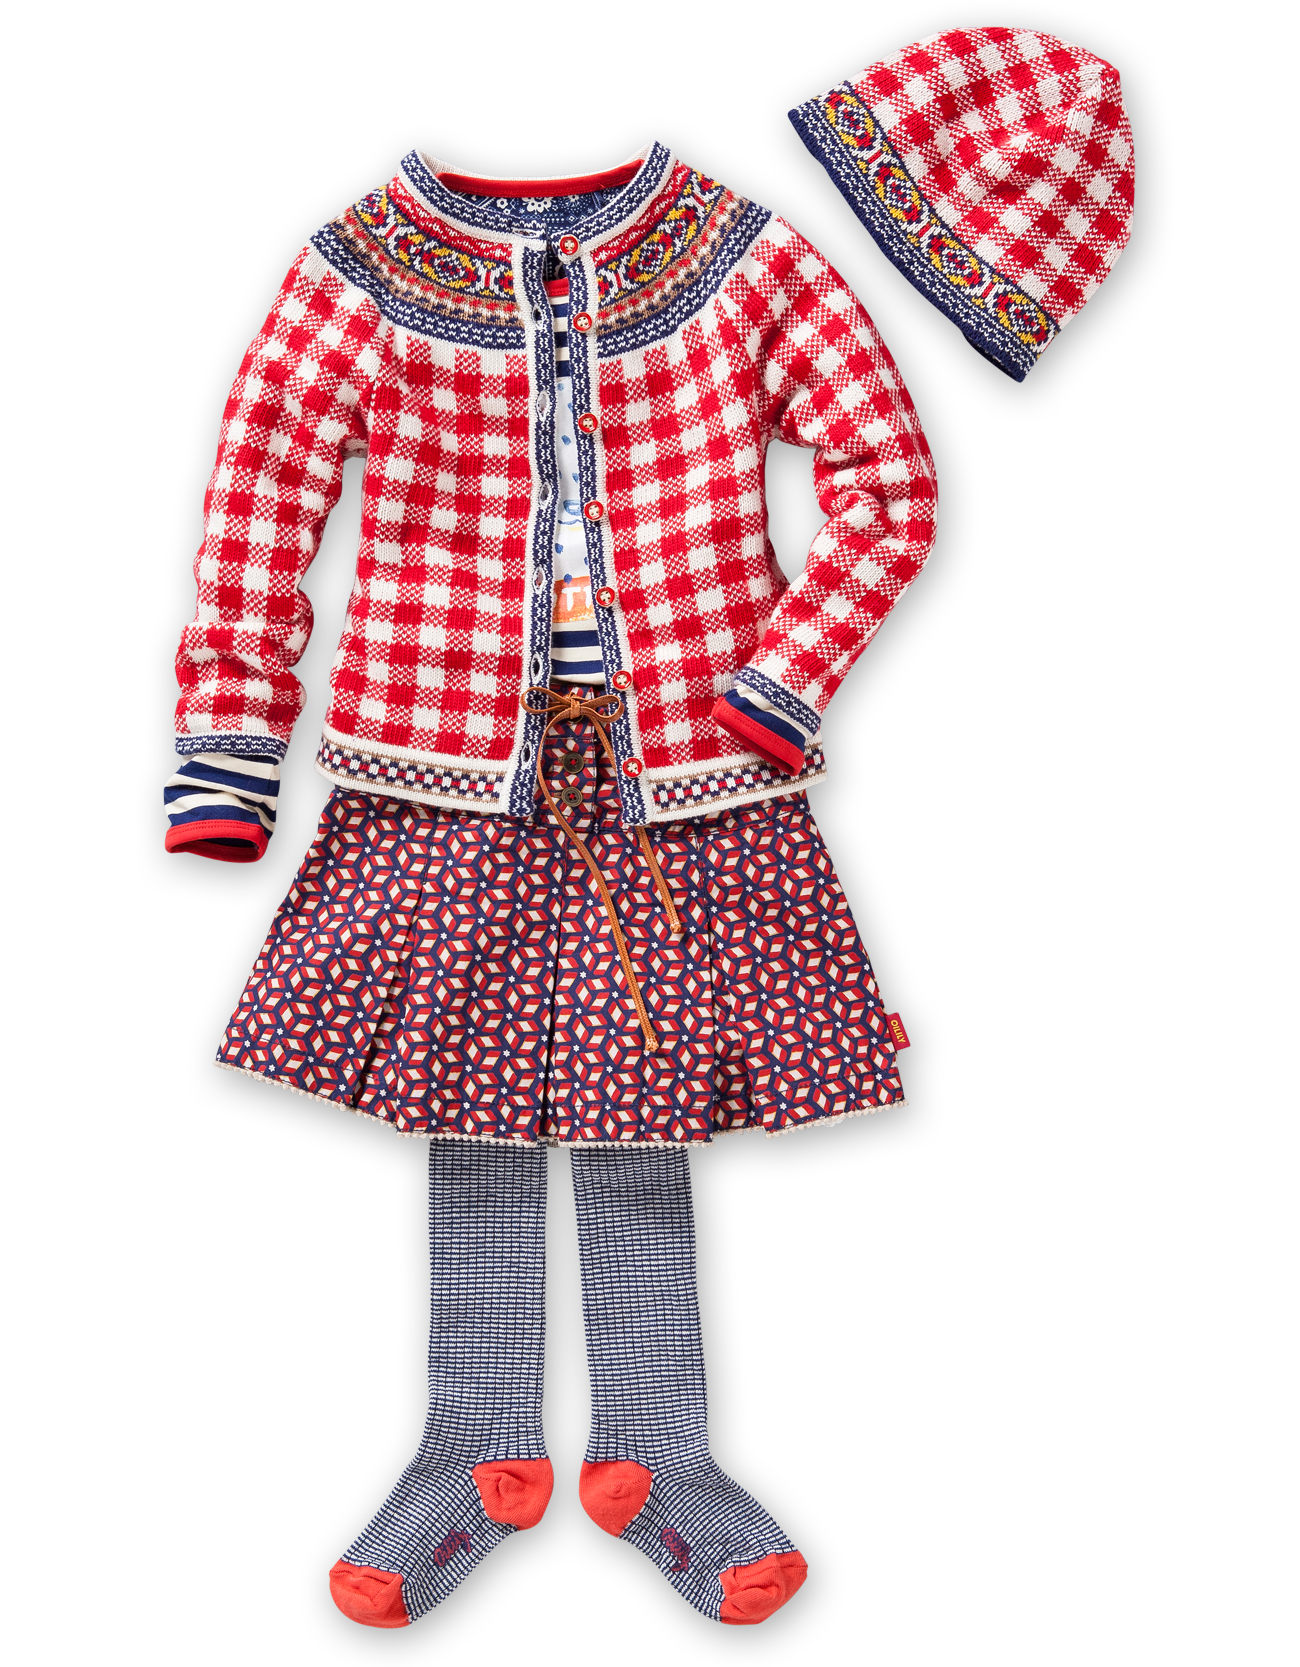 98ad21bbb OILILY Children's Wear - Fall Winter 2013 | GIRLS Fashion and Beauty ...